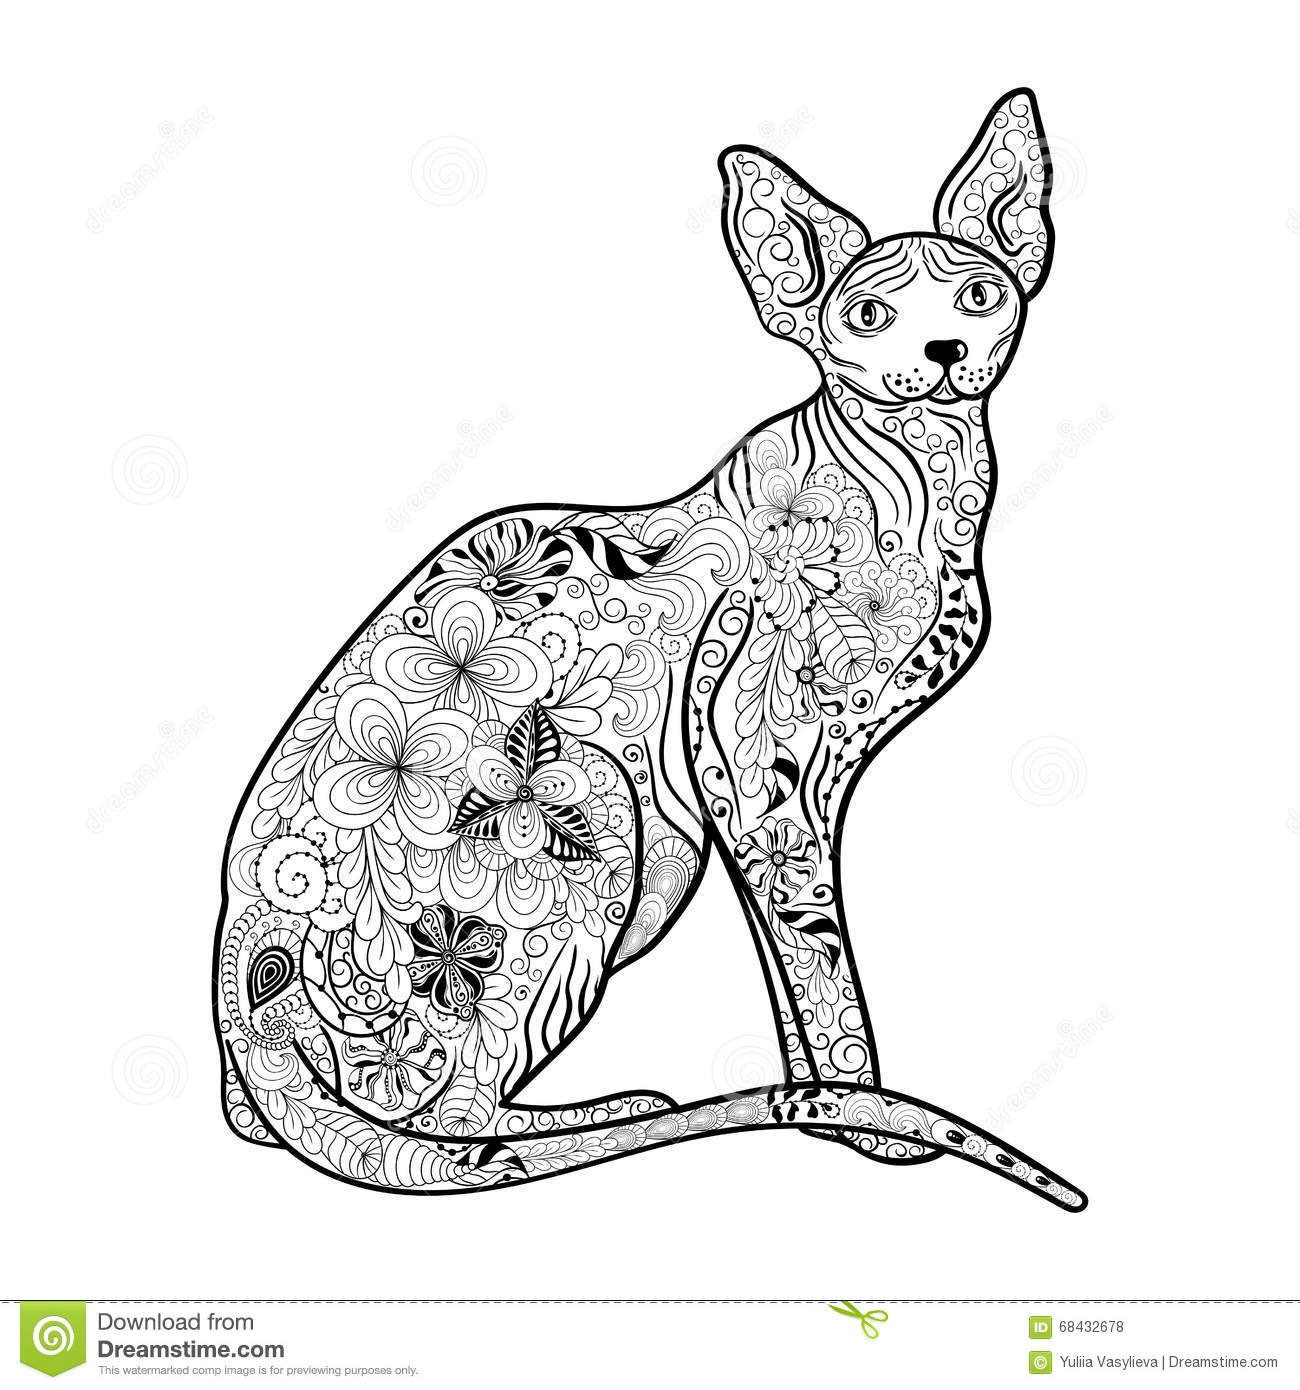 Cat Sphynx Doodle Stock Vector Illustration Of Graphic